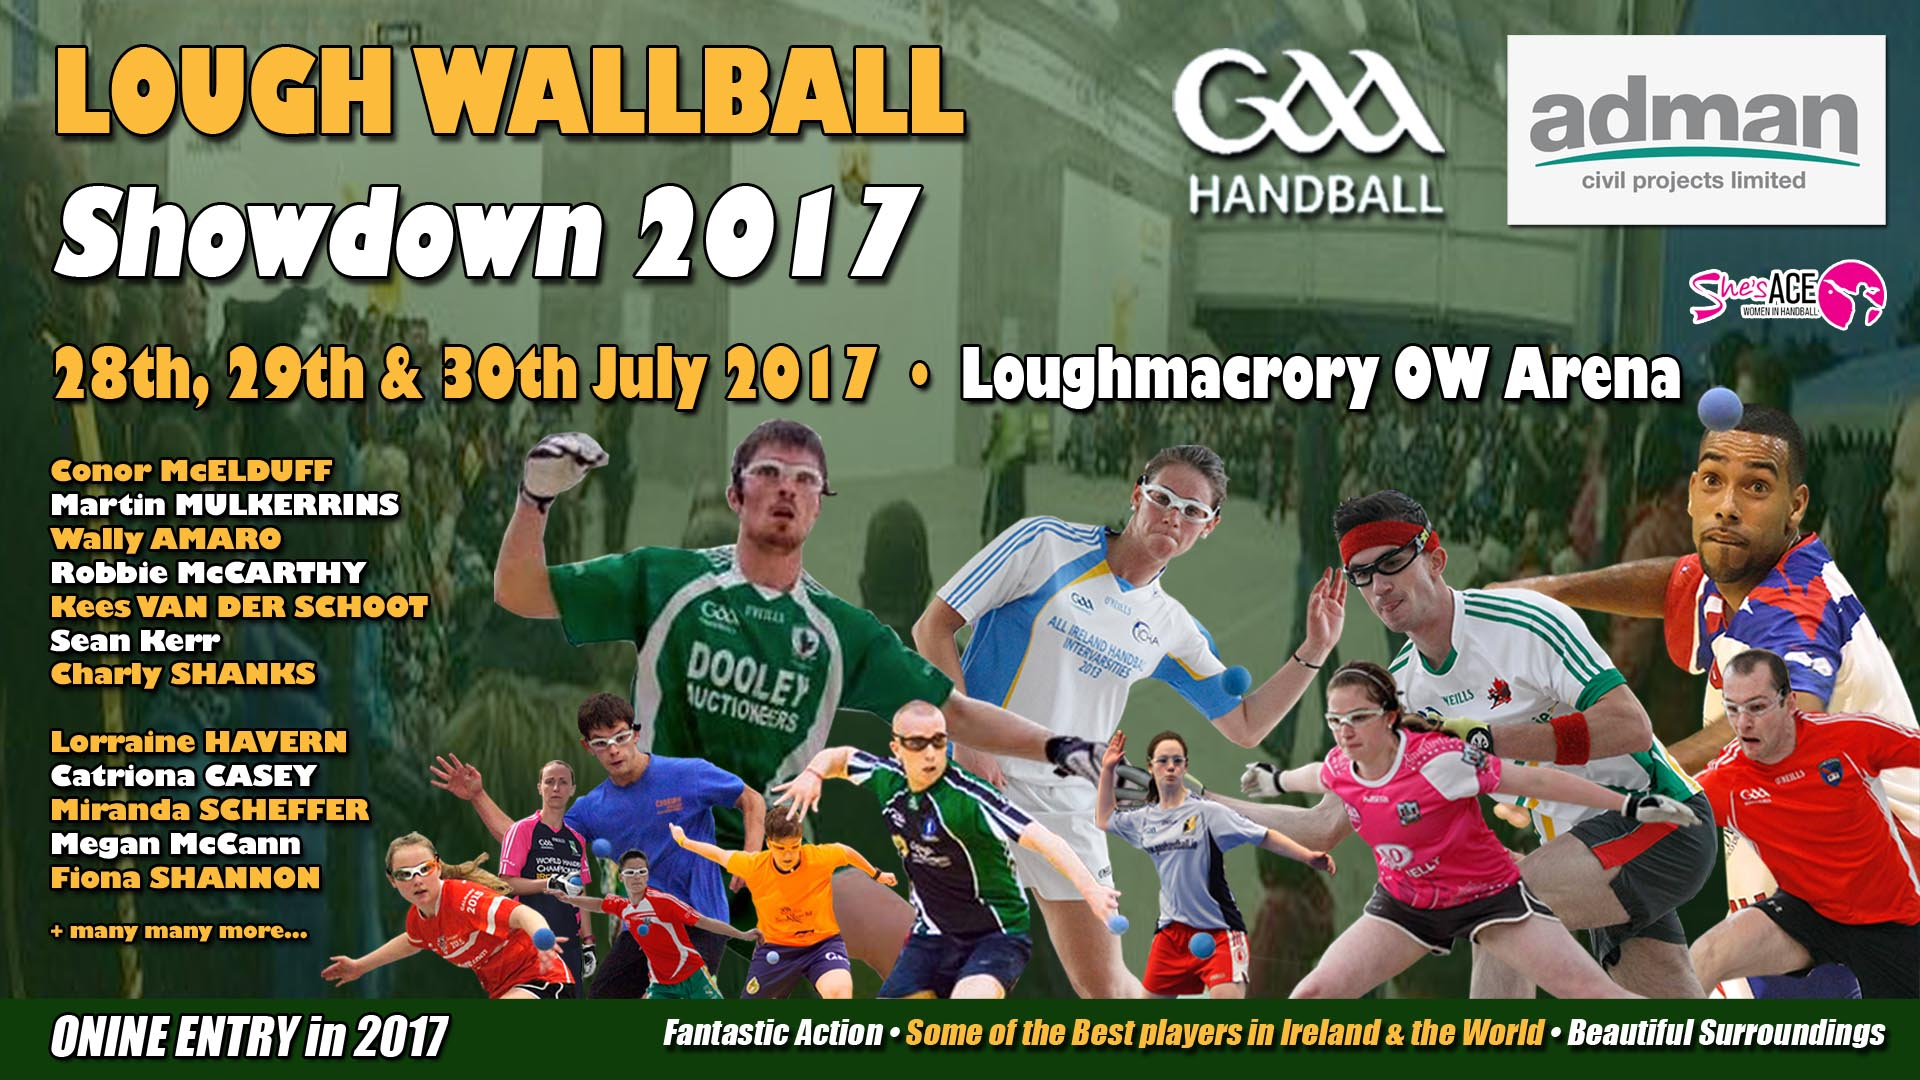 Massive interest aroused ahead of 4th Annual Loughmacrory Wallball Showdown